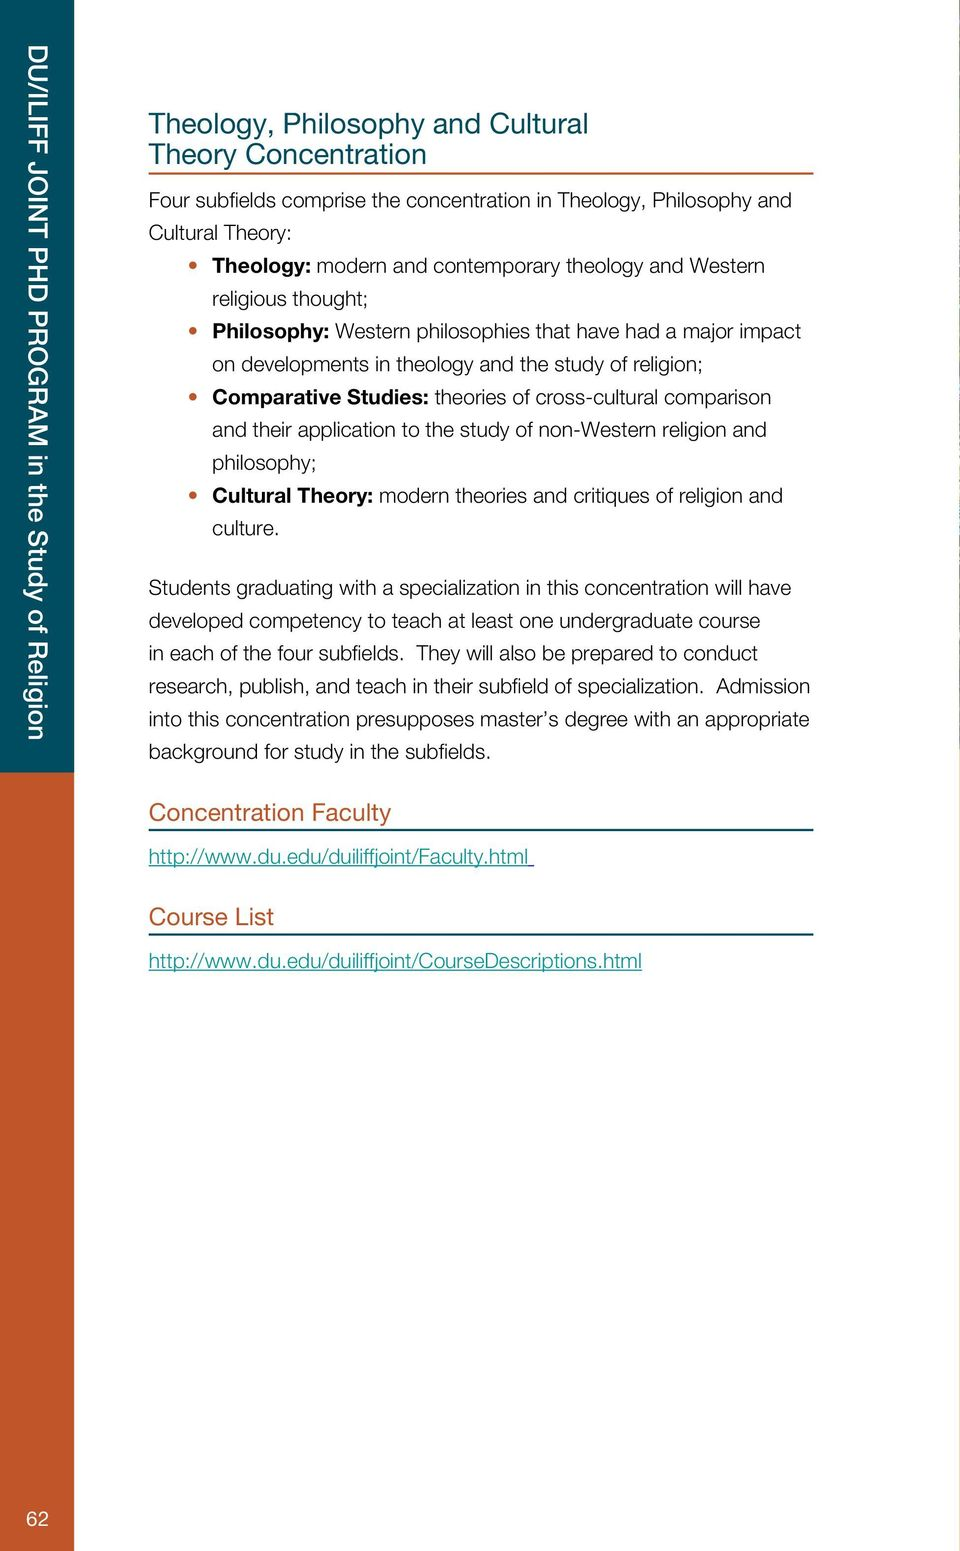 Comparative Studies: theories of cross-cultural comparison and their application to the study of non-western religion and philosophy; Cultural Theory: modern theories and critiques of religion and